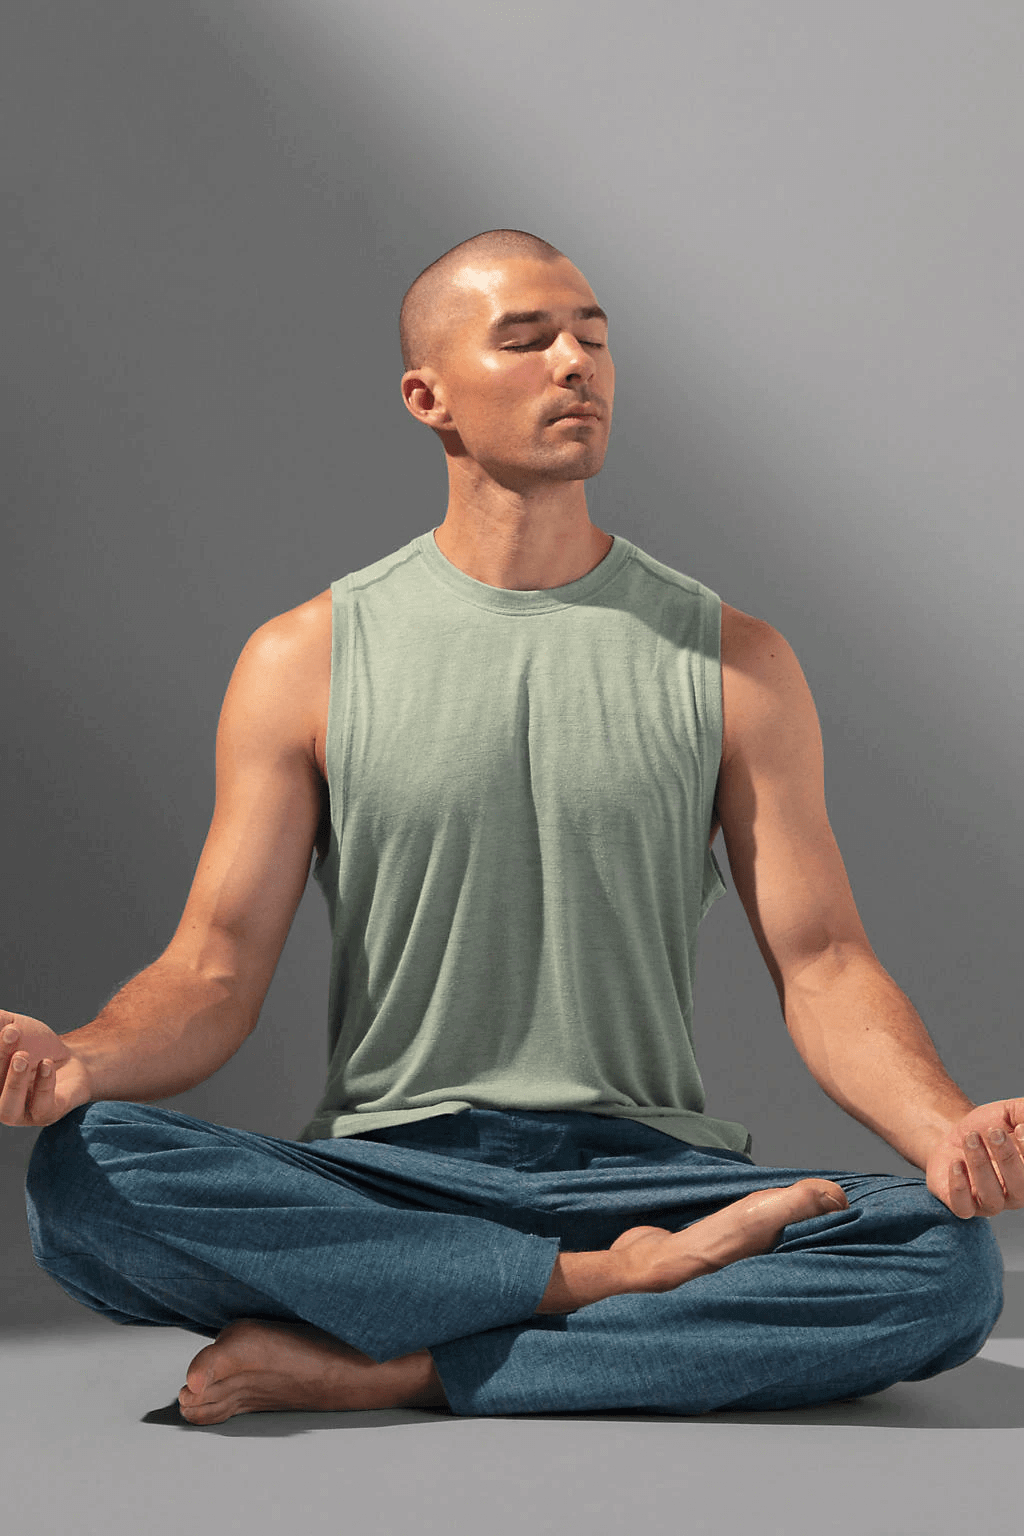 Men's Yoga Clothing